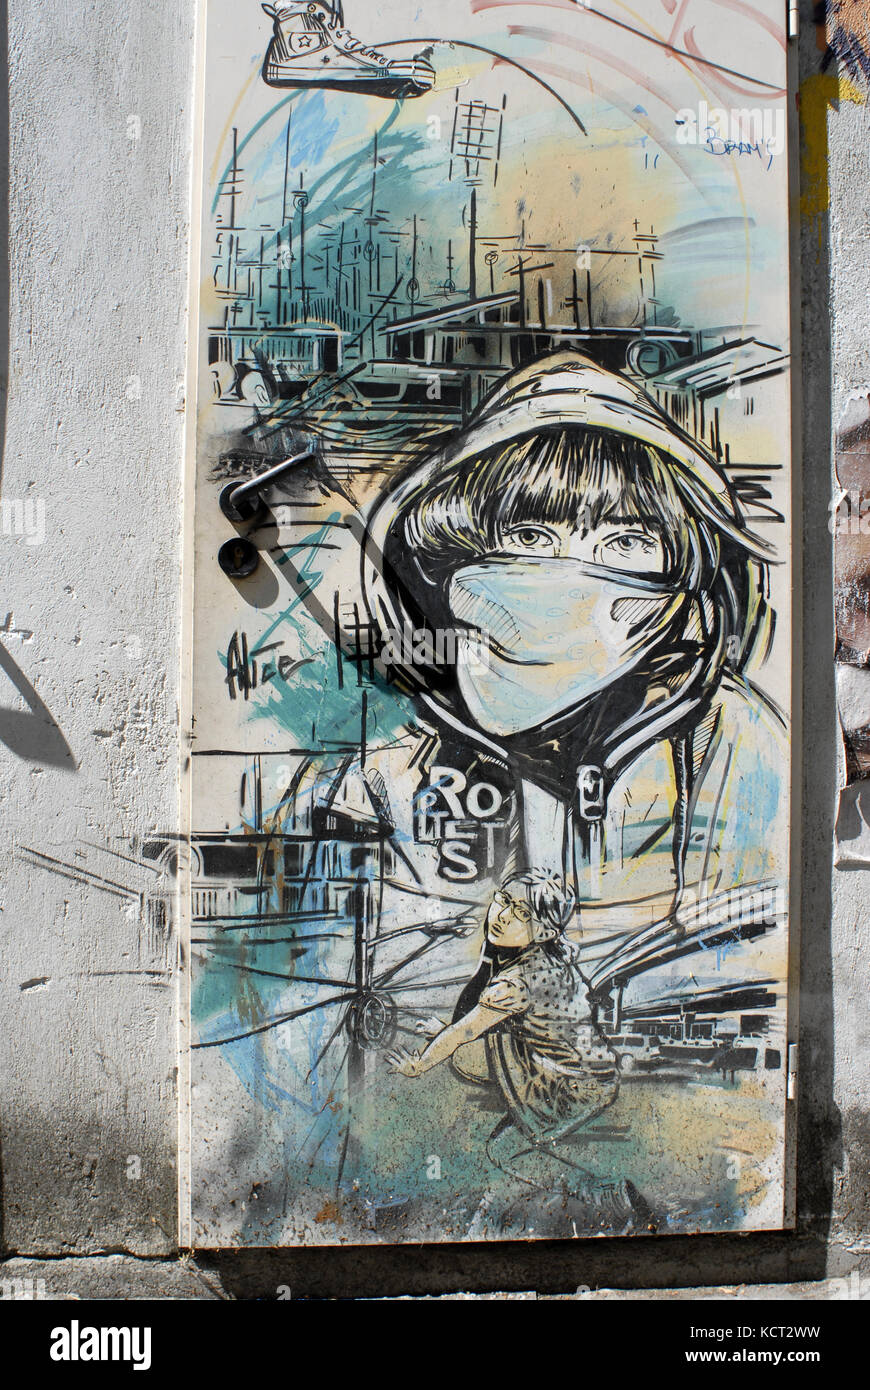 Alice Pasquini (born in Rome in 1980) is an Italian street artist, scenographer and illustrator. Alice Pasquini - Stock Image